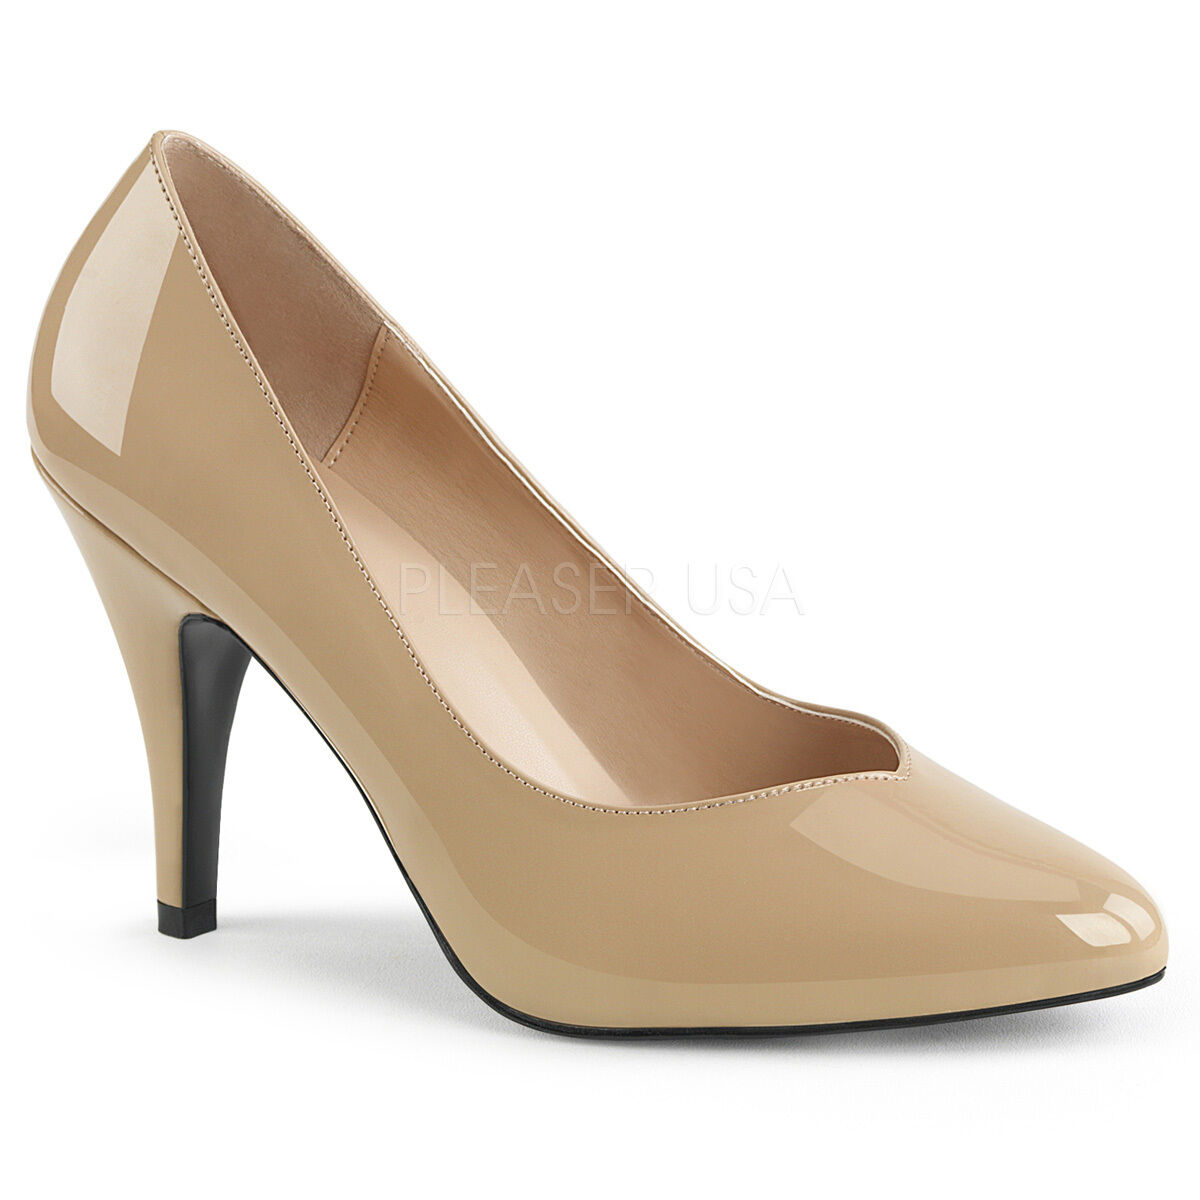 Pleaser Pink Label Passform dream1067cm 10.2cm High Heel Pumps Weite Passform Label Größes 3 897ad2